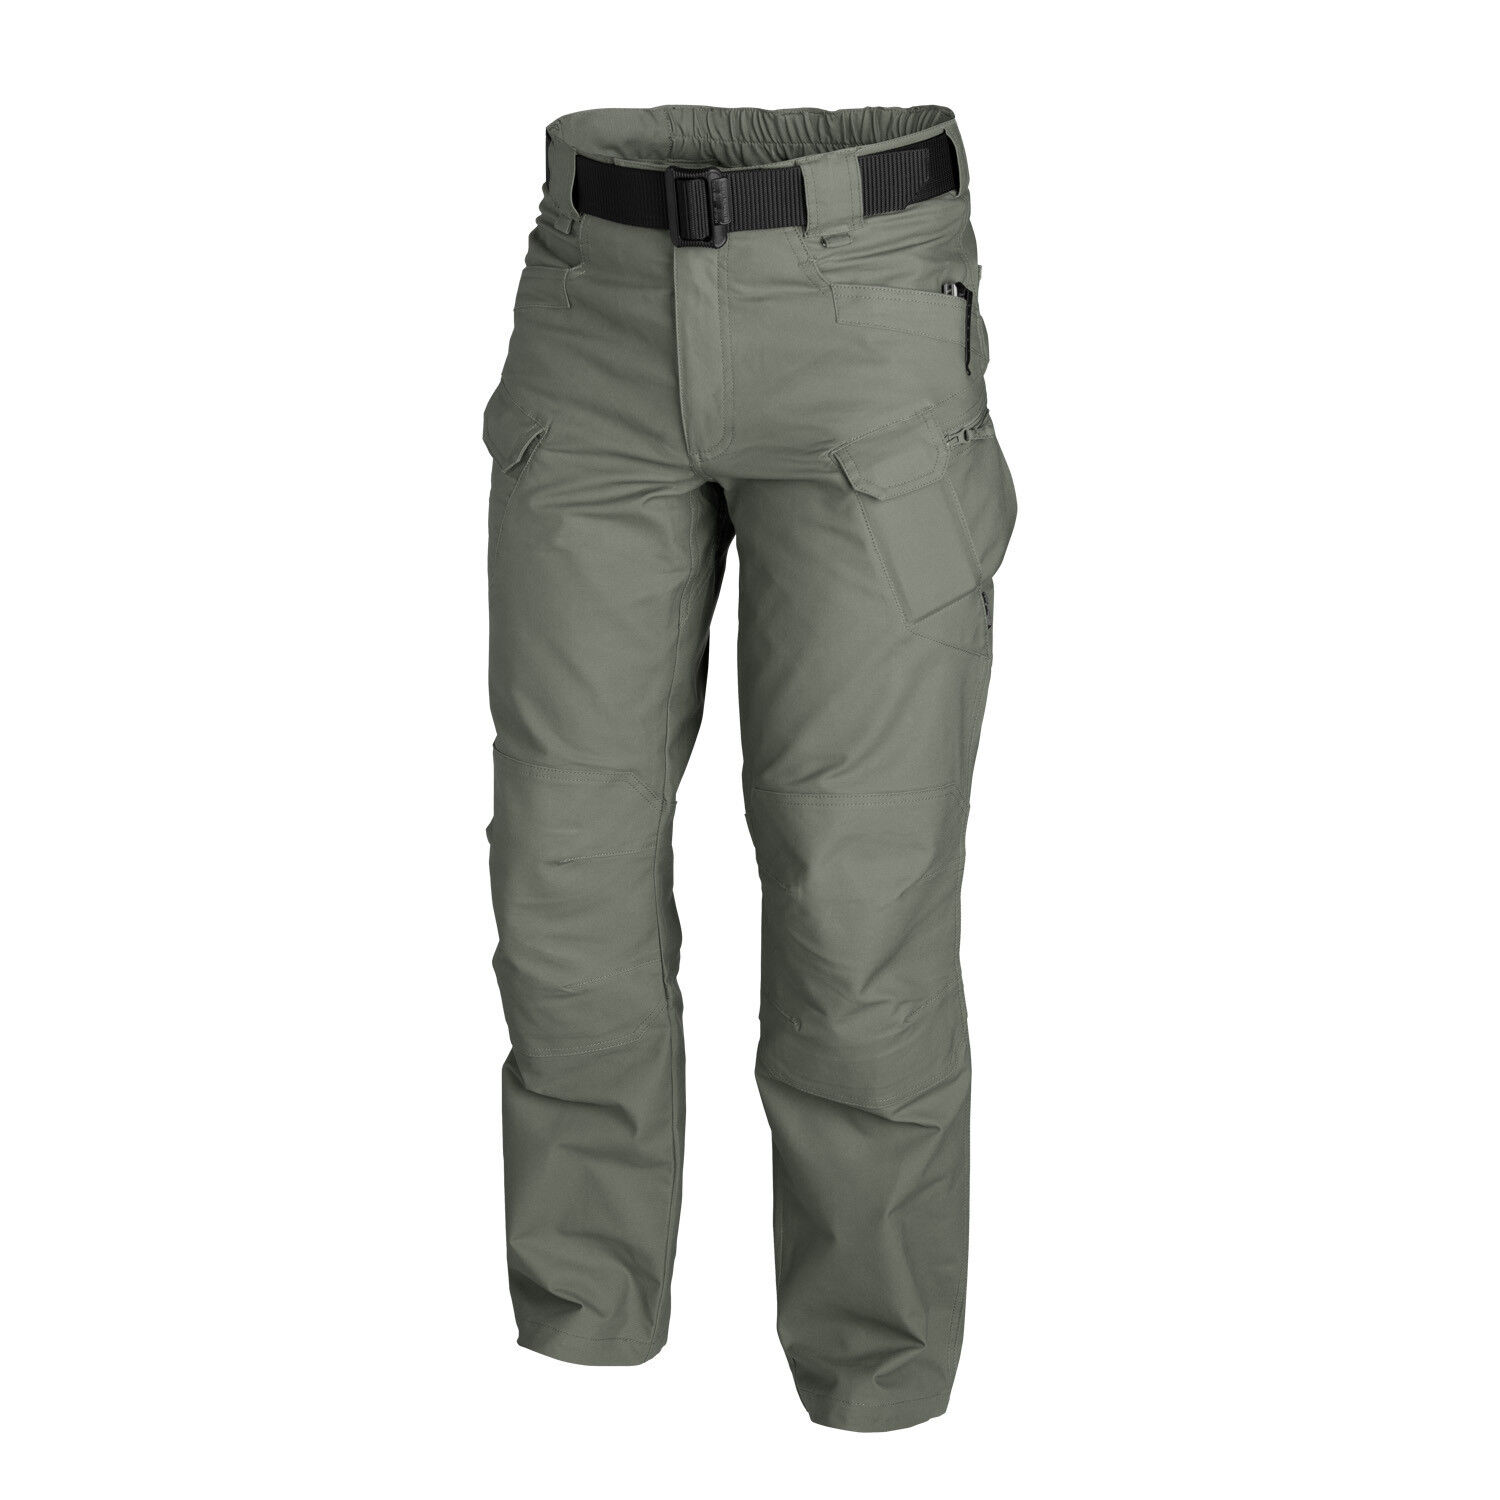 HELIKON TEX UTL URBAN TACTICAL PANTS UTP Freizeit HOSE Oliv Drab LL Large Long